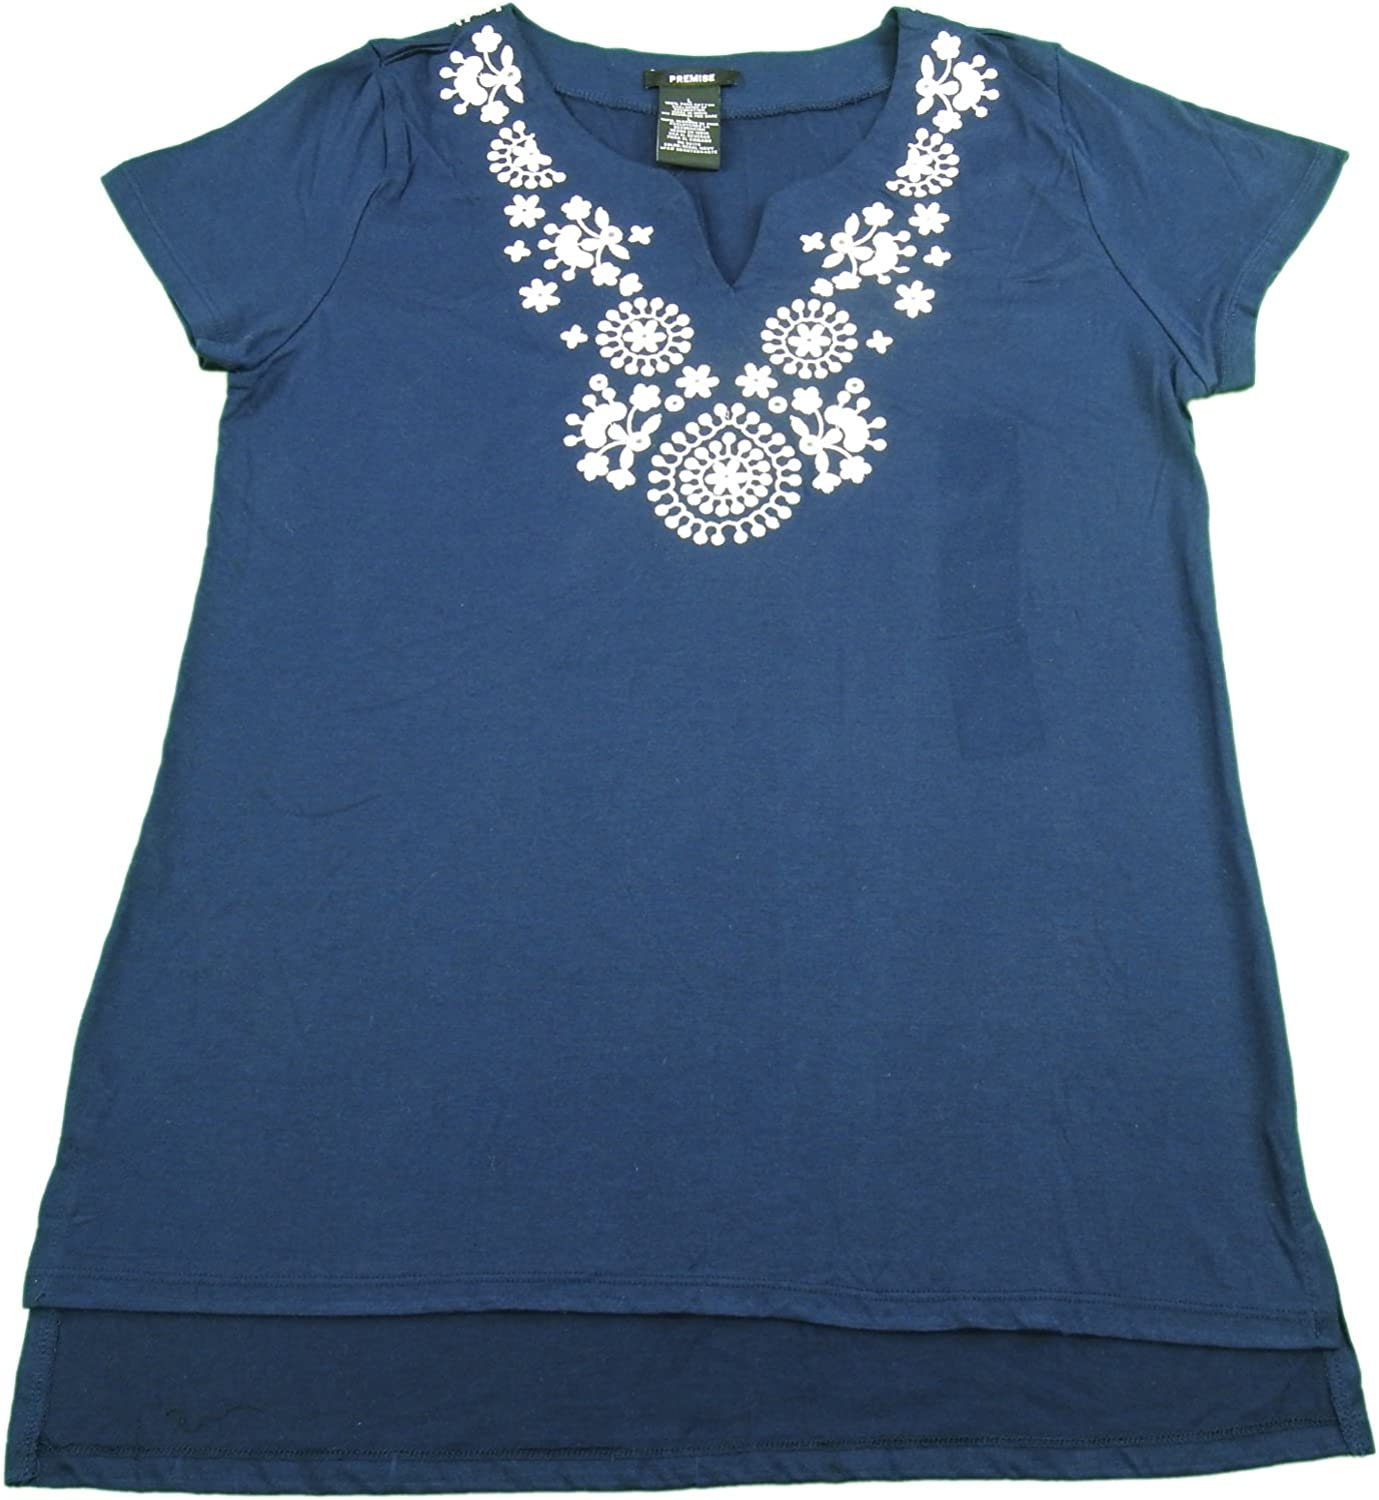 Premise Ladies Size Large Embroidered Top bluee